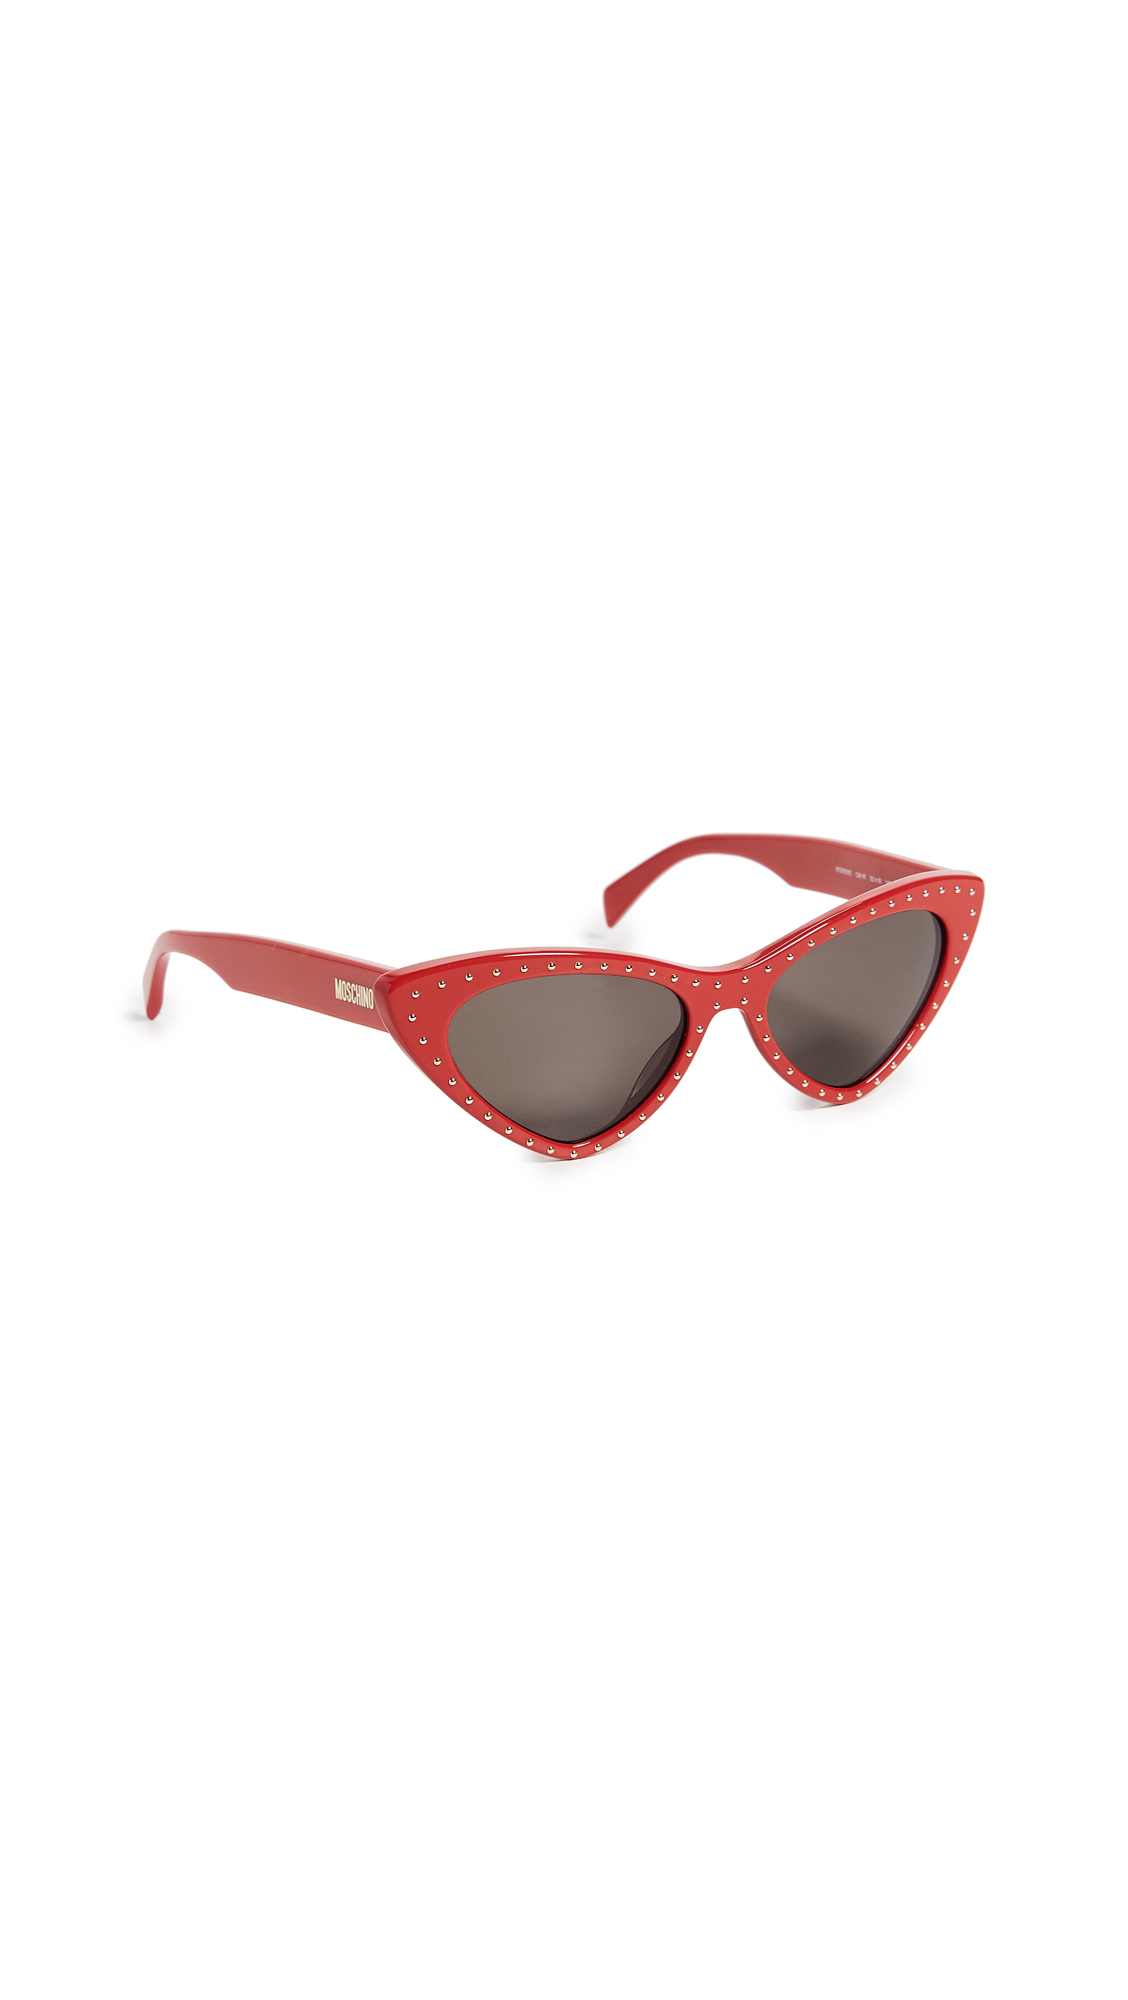 Moschino Pointed Cat Eye Sunglasses - Red/Grey Blue